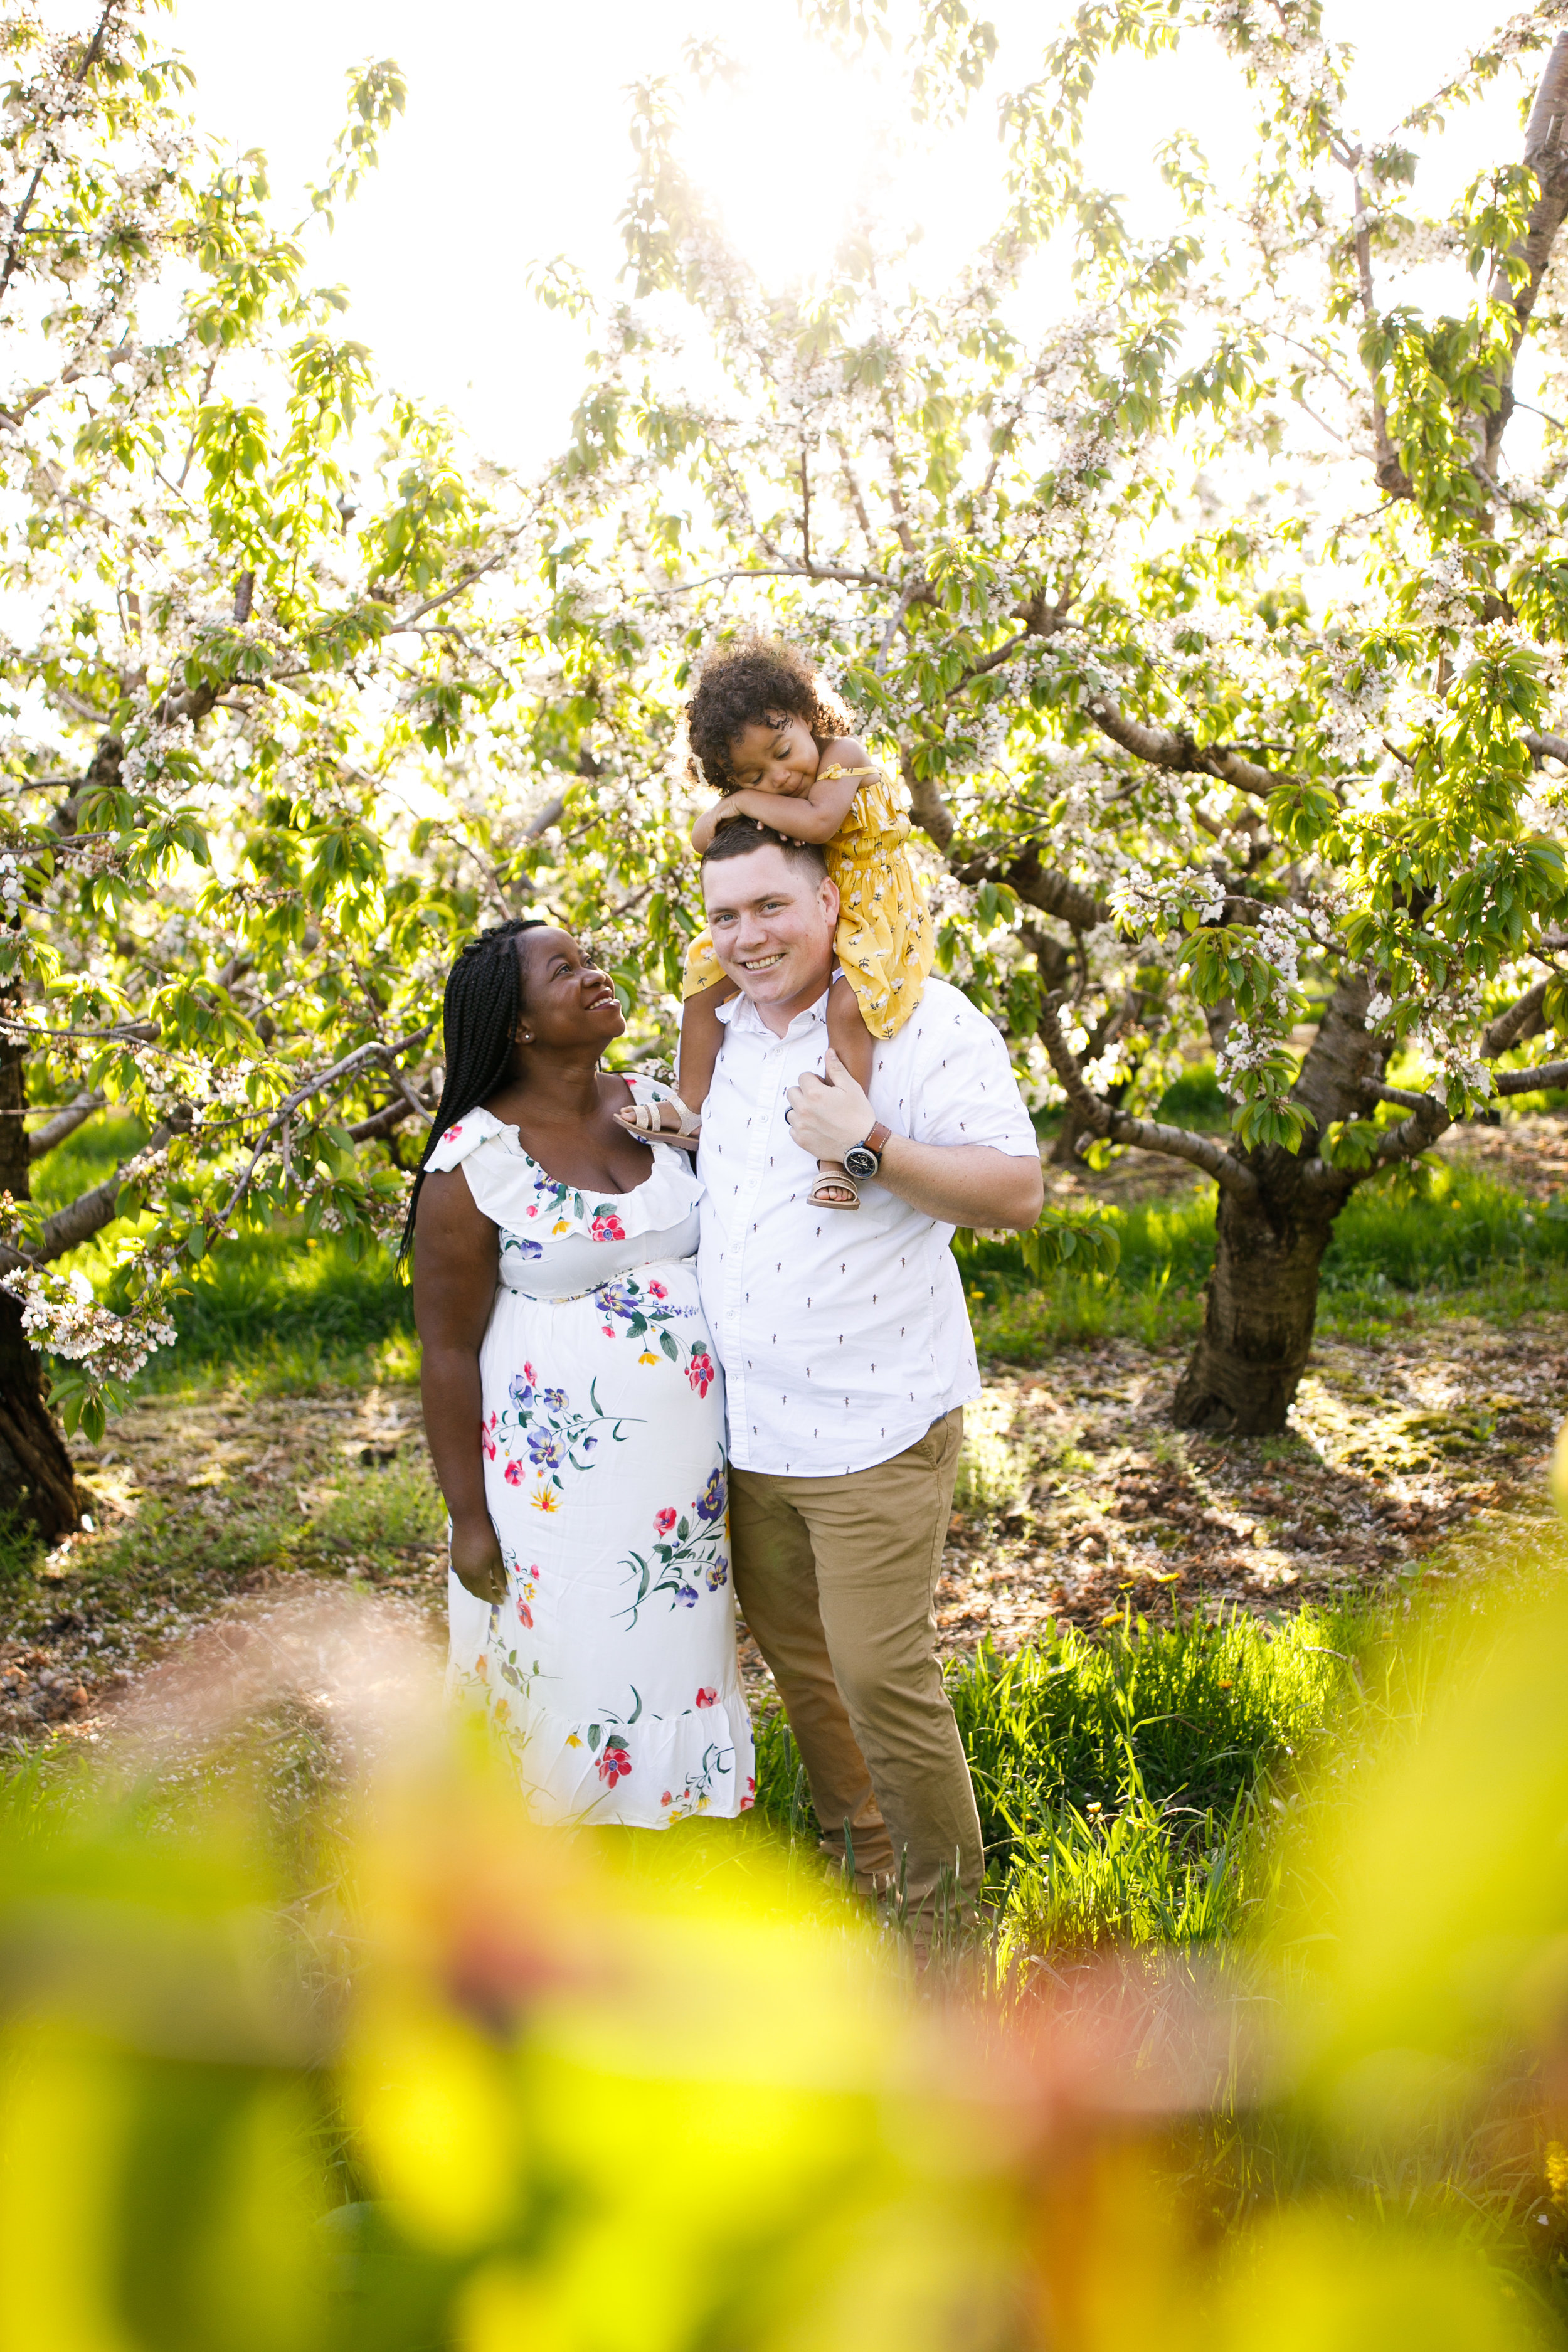 Grand Rapids family photographer - j darling photo - jessica darling - grand rapids photographer - family session - apple blossoms - sparta - michigan photographer006.jpg